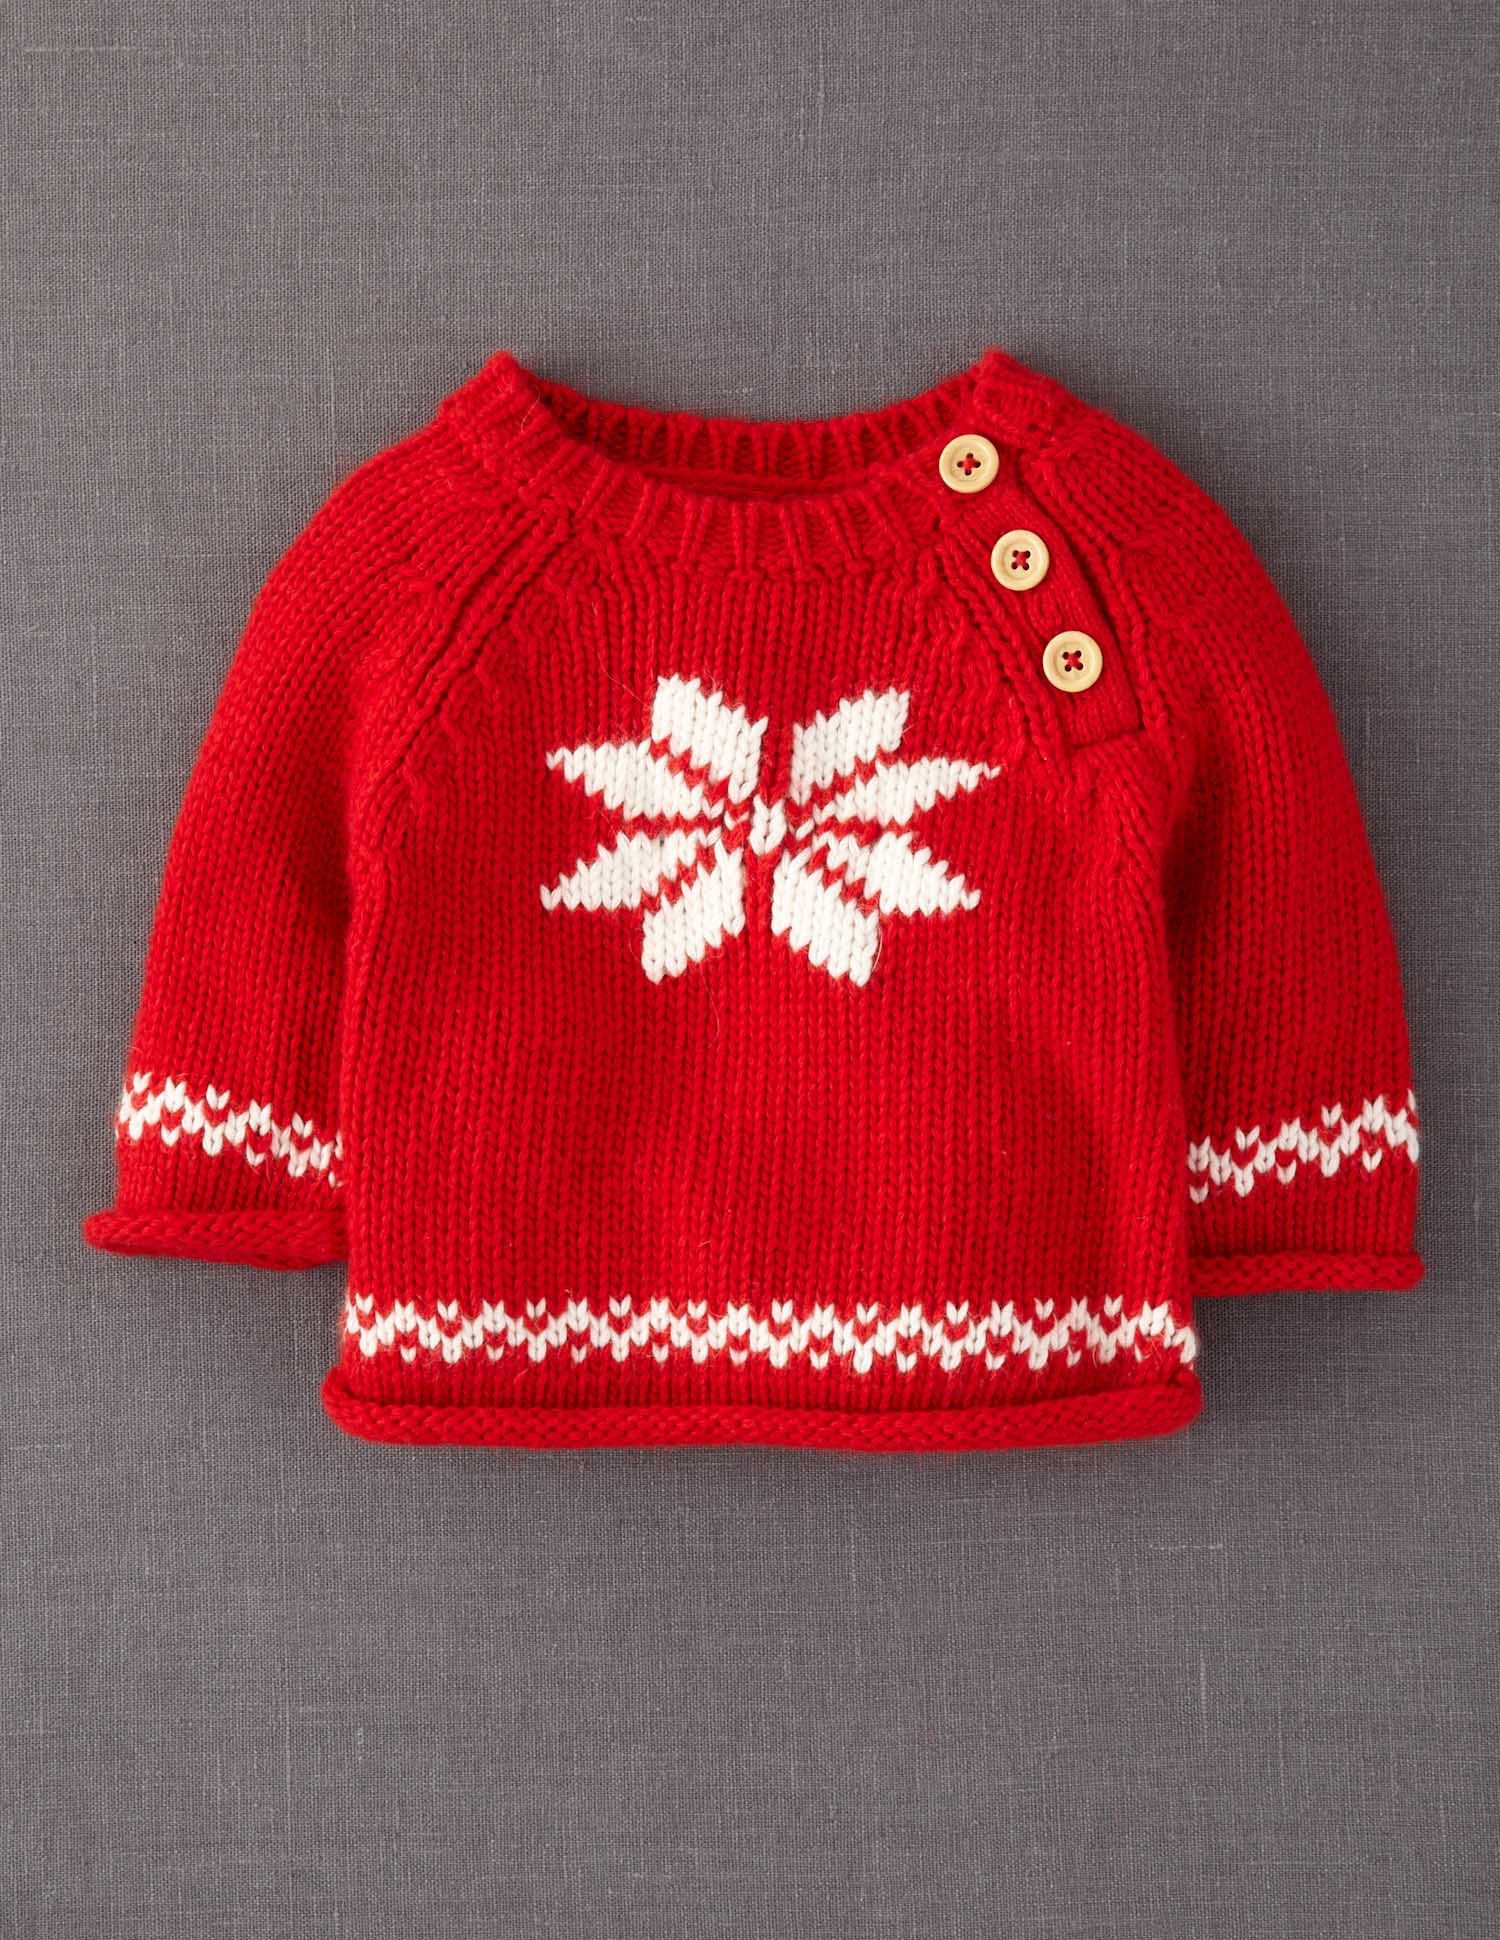 snowy knit - nice memory - I made this star pattern for someone a ...